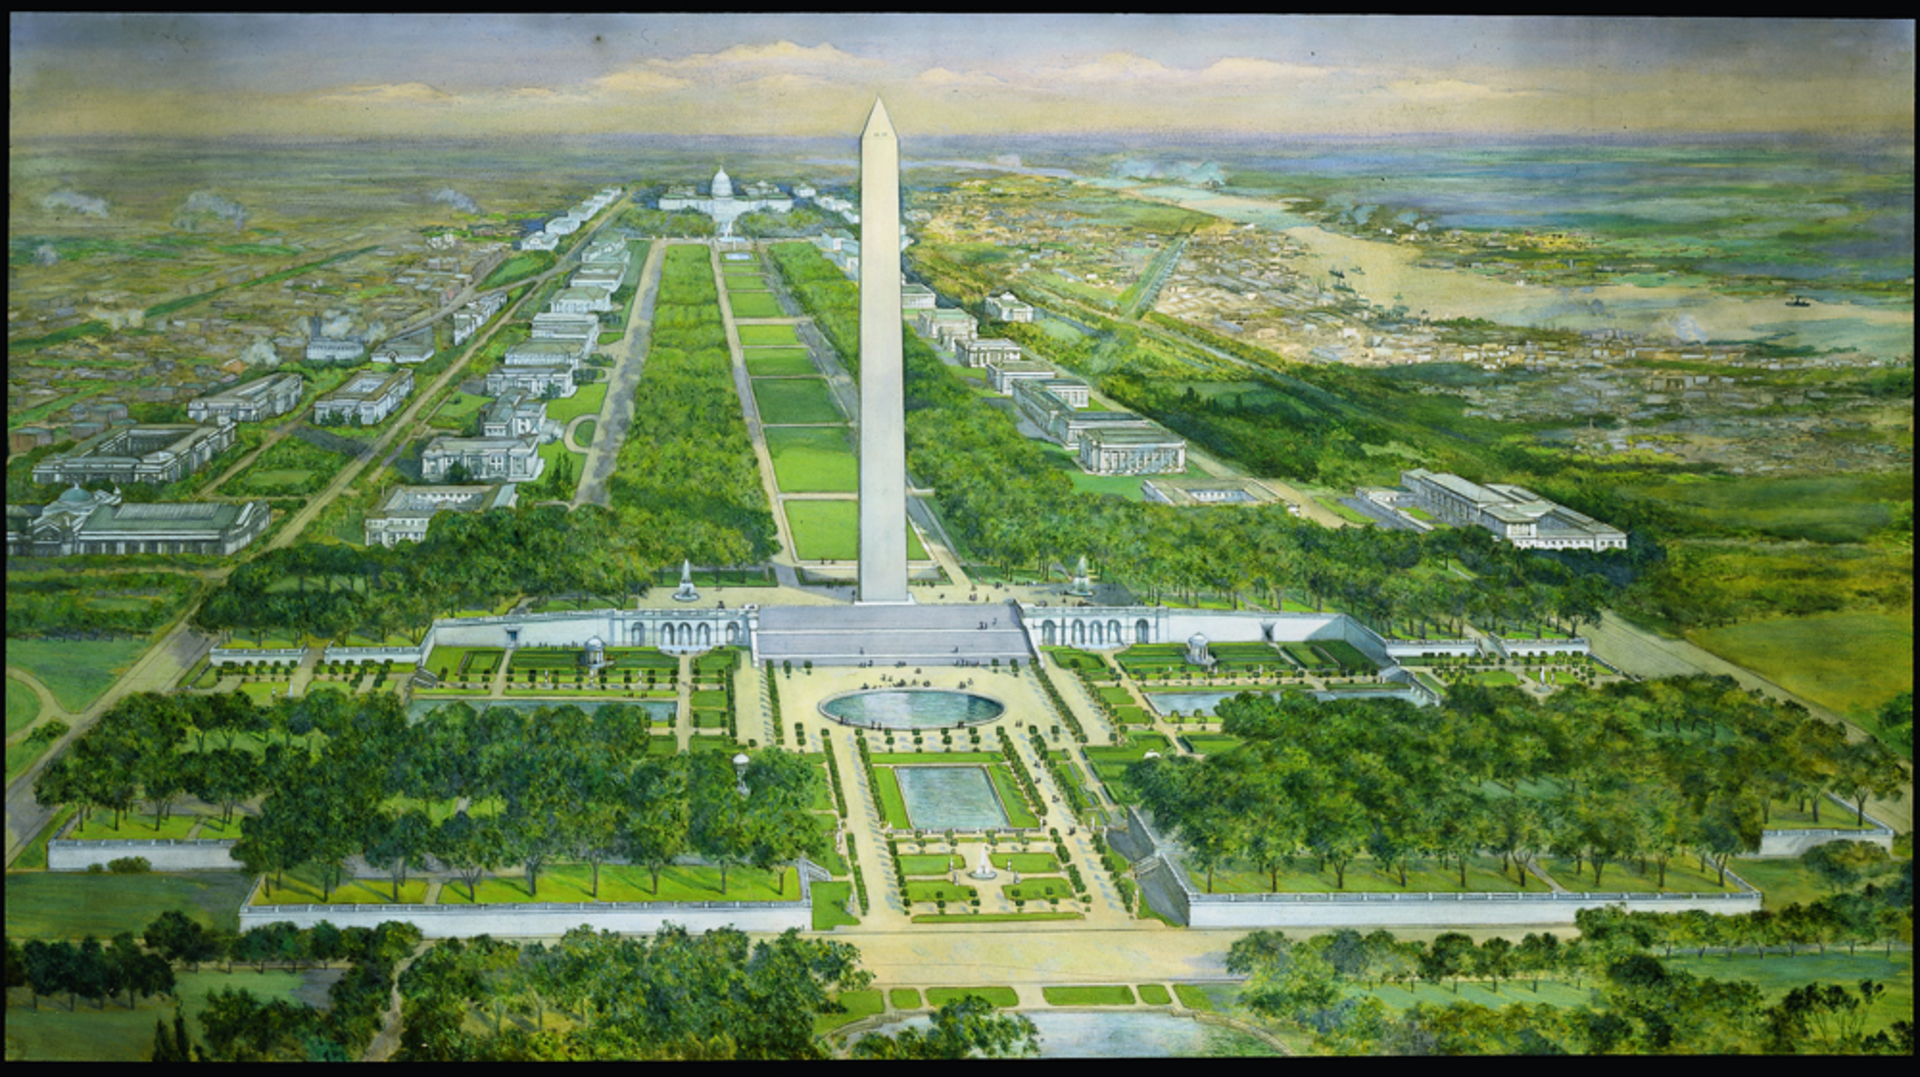 Plan for the National Mall -- Rendering of the Proposal for the Washington Monument grounds, by the Senate Park Commission, 1901-02.The wide steps, the circular pool, and the terraced gardens were all intended to provide a more dignified base for the monument, while resolving the awkward geometry resulting from its placement off the axis from the White House. Credit: Courtesy of the U.S. Commission of Fine Arts